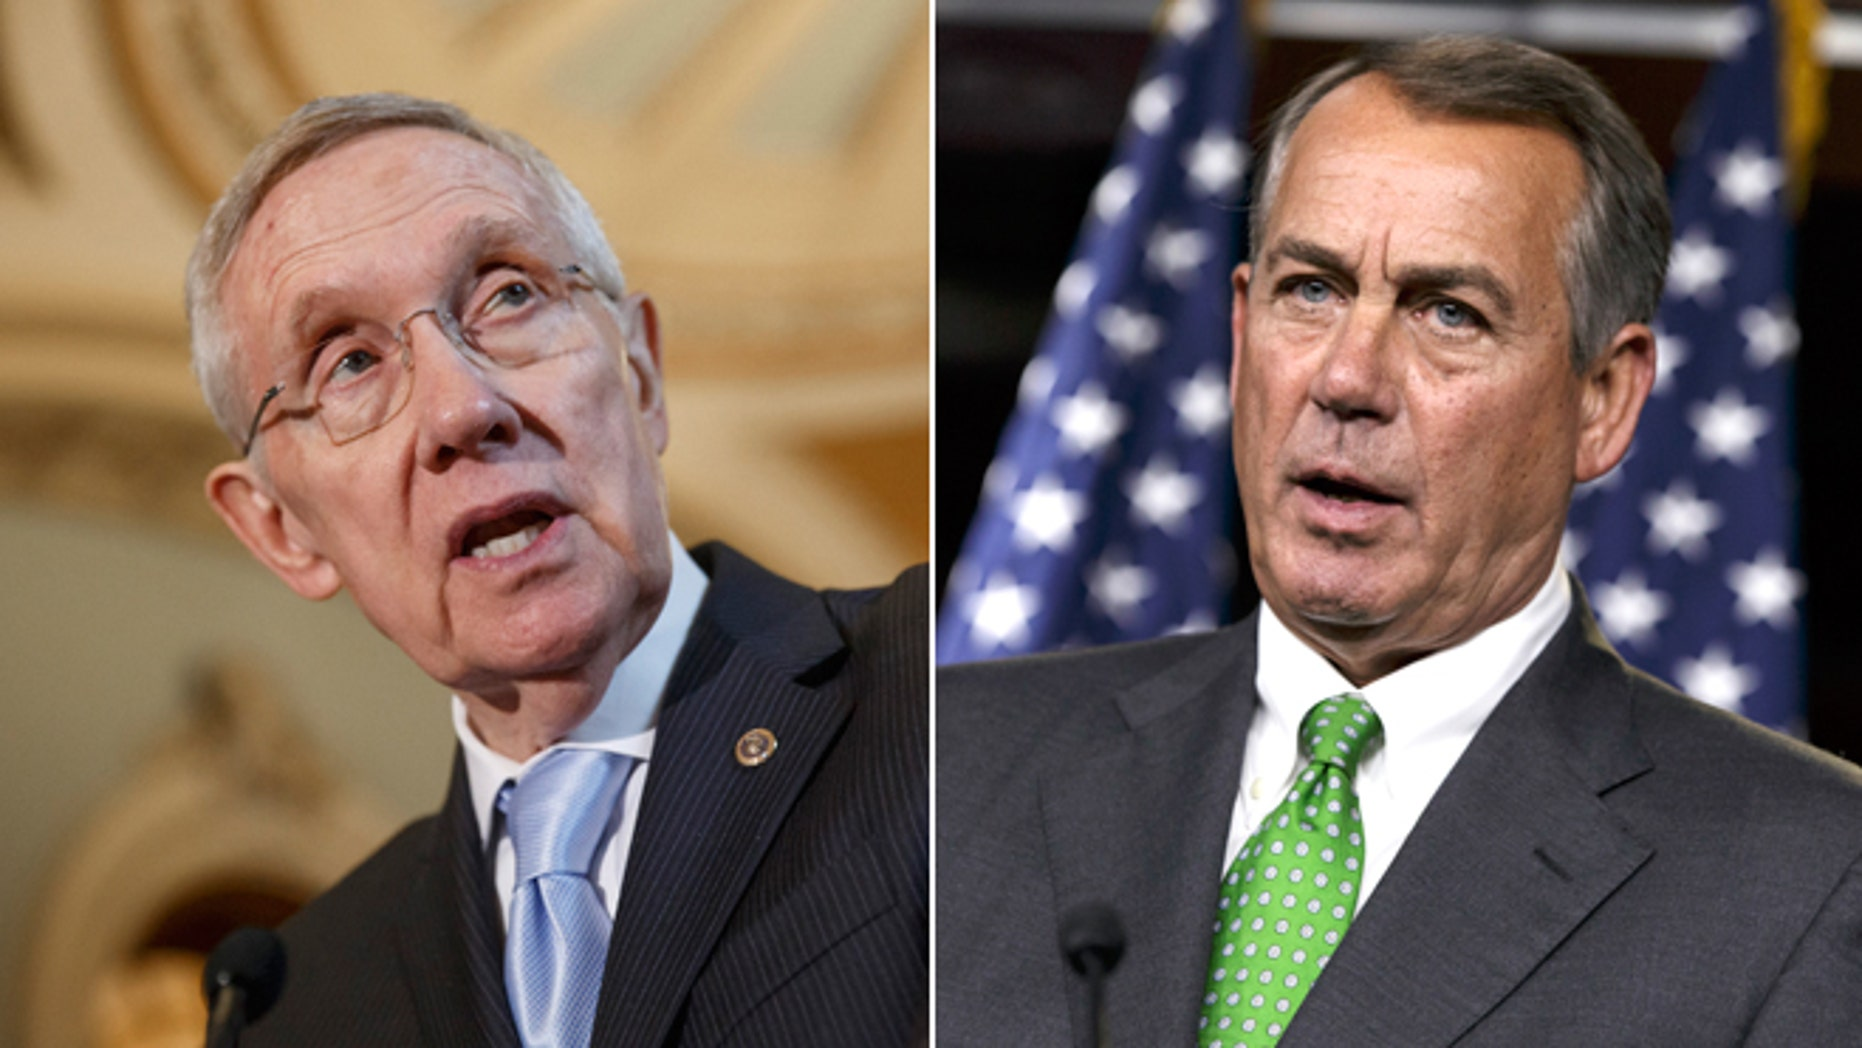 In this Sept. 16, 2014, file photo, Senate Majority Leader Harry Reid, D-Nev., speaks with reporters and in this Sept. 11, 2014, photo, House Speaker John Boehner of Ohio speaks during a news conference, both on Capitol Hill in Washington.